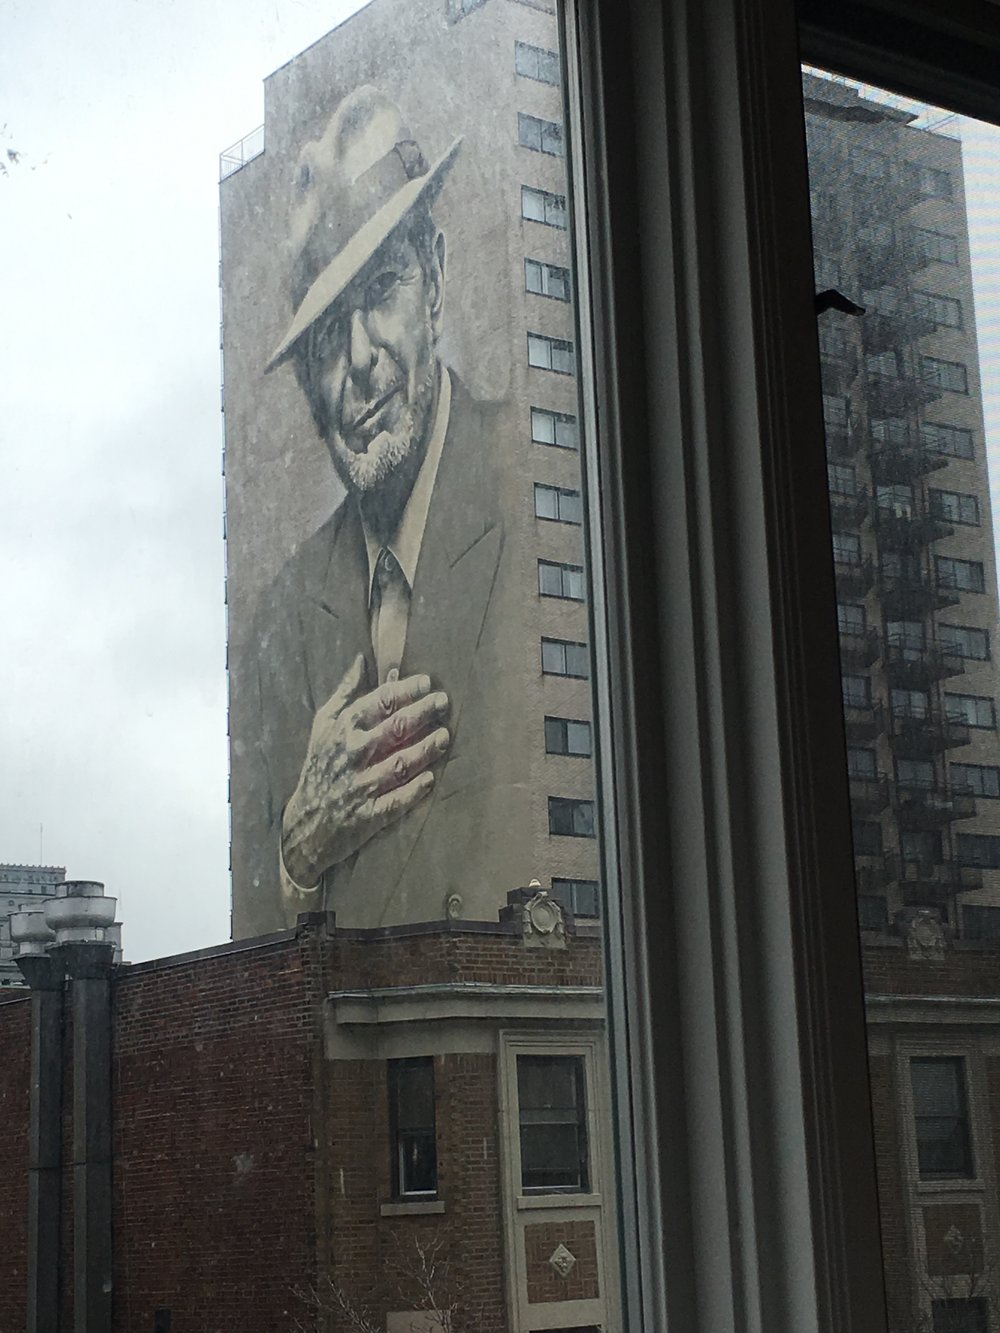 Leonard Cohen  kept a watchful eye over The Alternative's proceedings, through the windows of Concordia University, Montreal